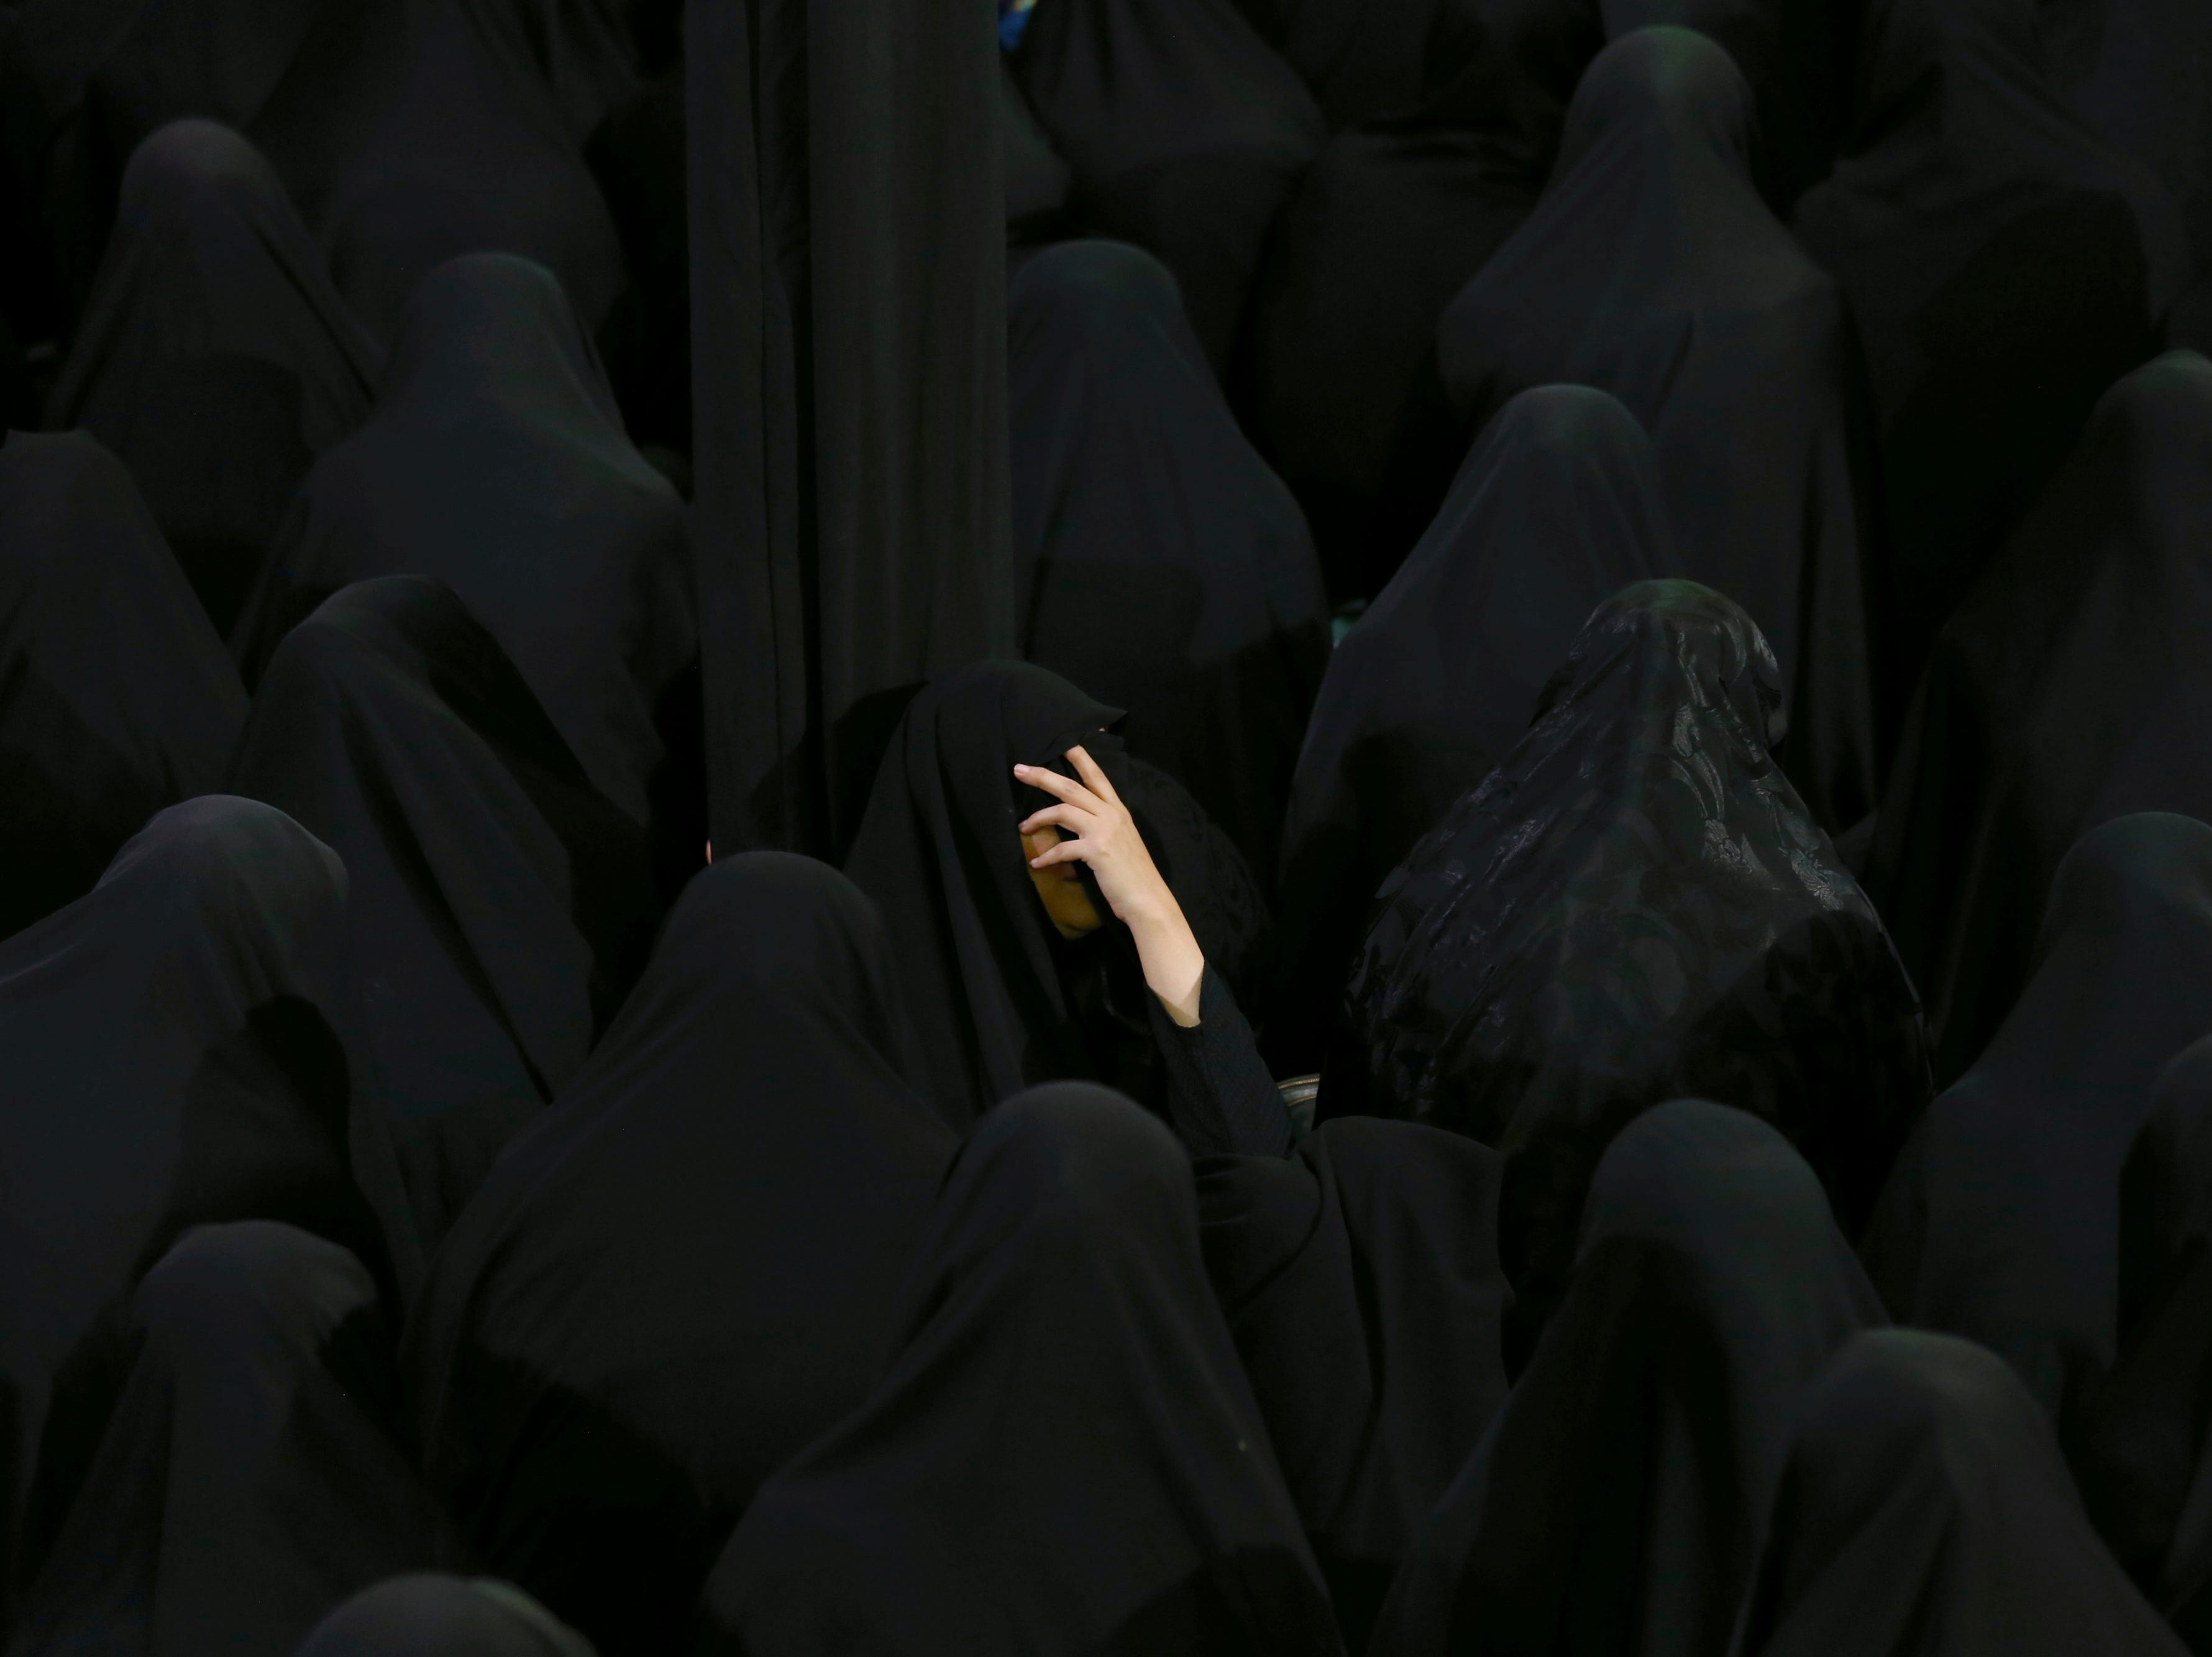 Muslim Shiite women mourn during the holy day of Ashoura at the Sadat Akhavi Mosque in Tehran, Iran, Thursday, Sept 20, 2018. Ashoura is the annual Shiite commemoration of the death of Imam Hussein, the grandson of the Prophet Muhammad, at the Battle of Karbala in present-day Iraq in the 7th century.